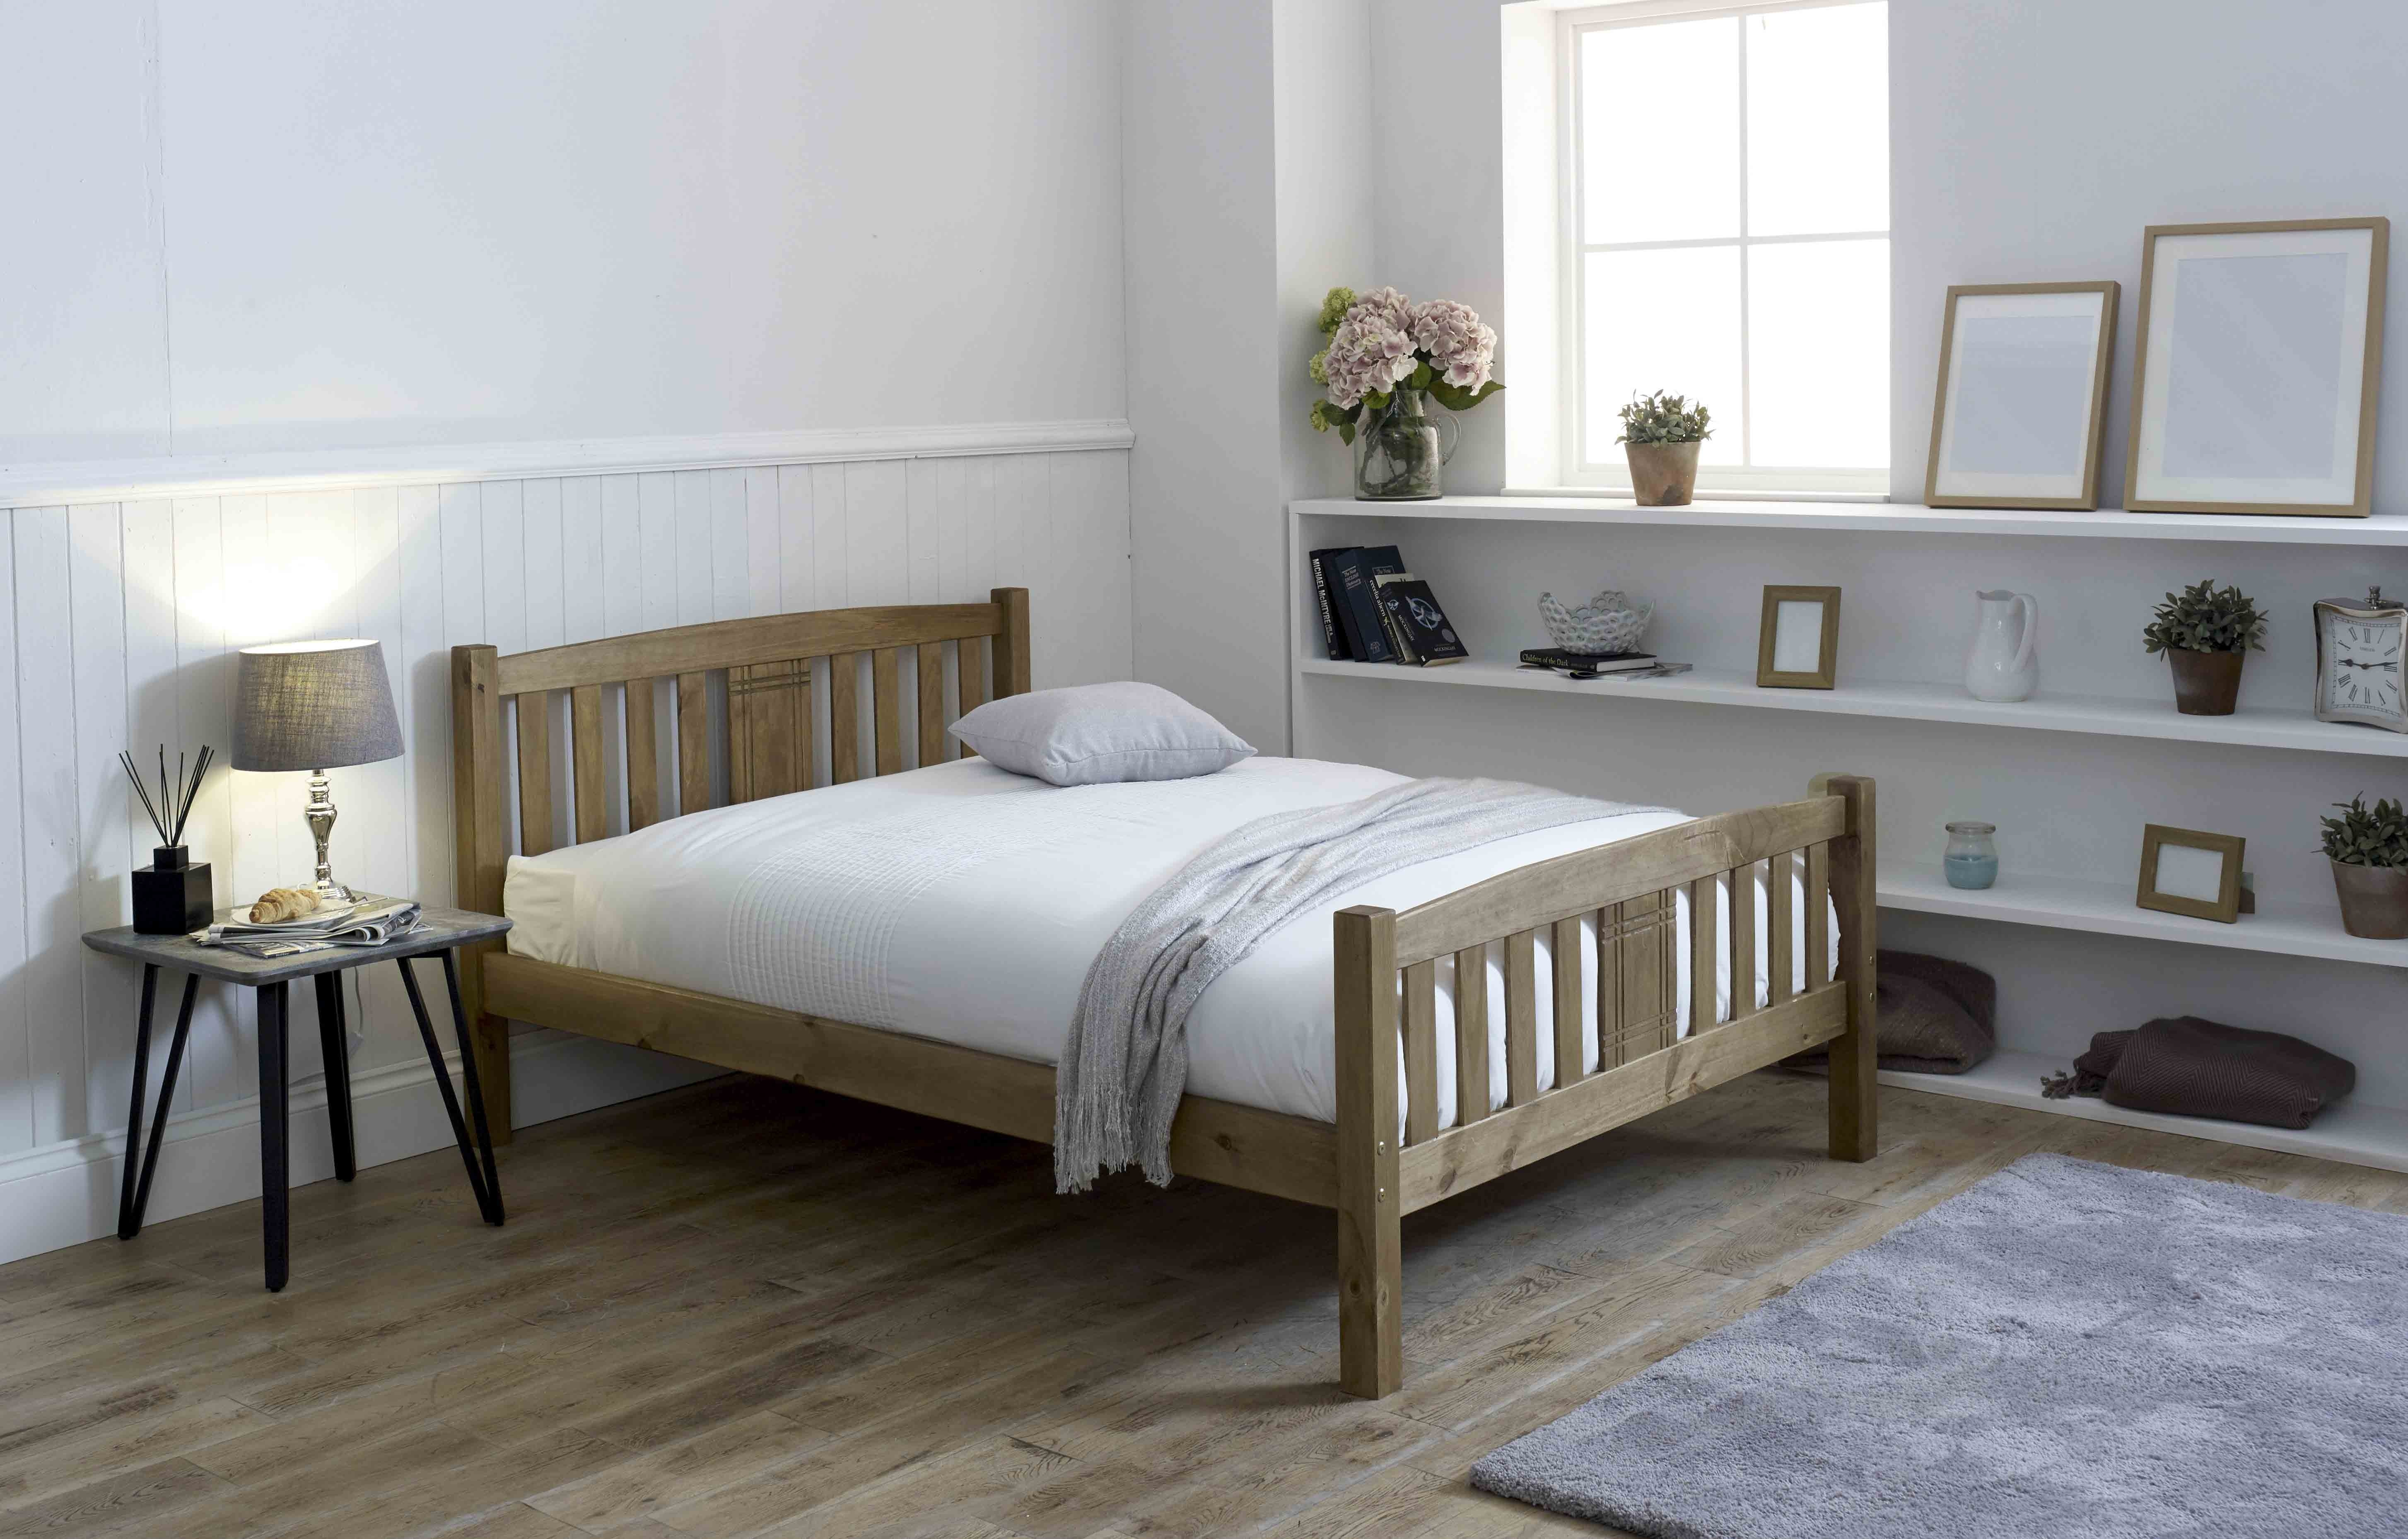 Sedna Wooden Bed Frame Assembly Instructions (Limelight)